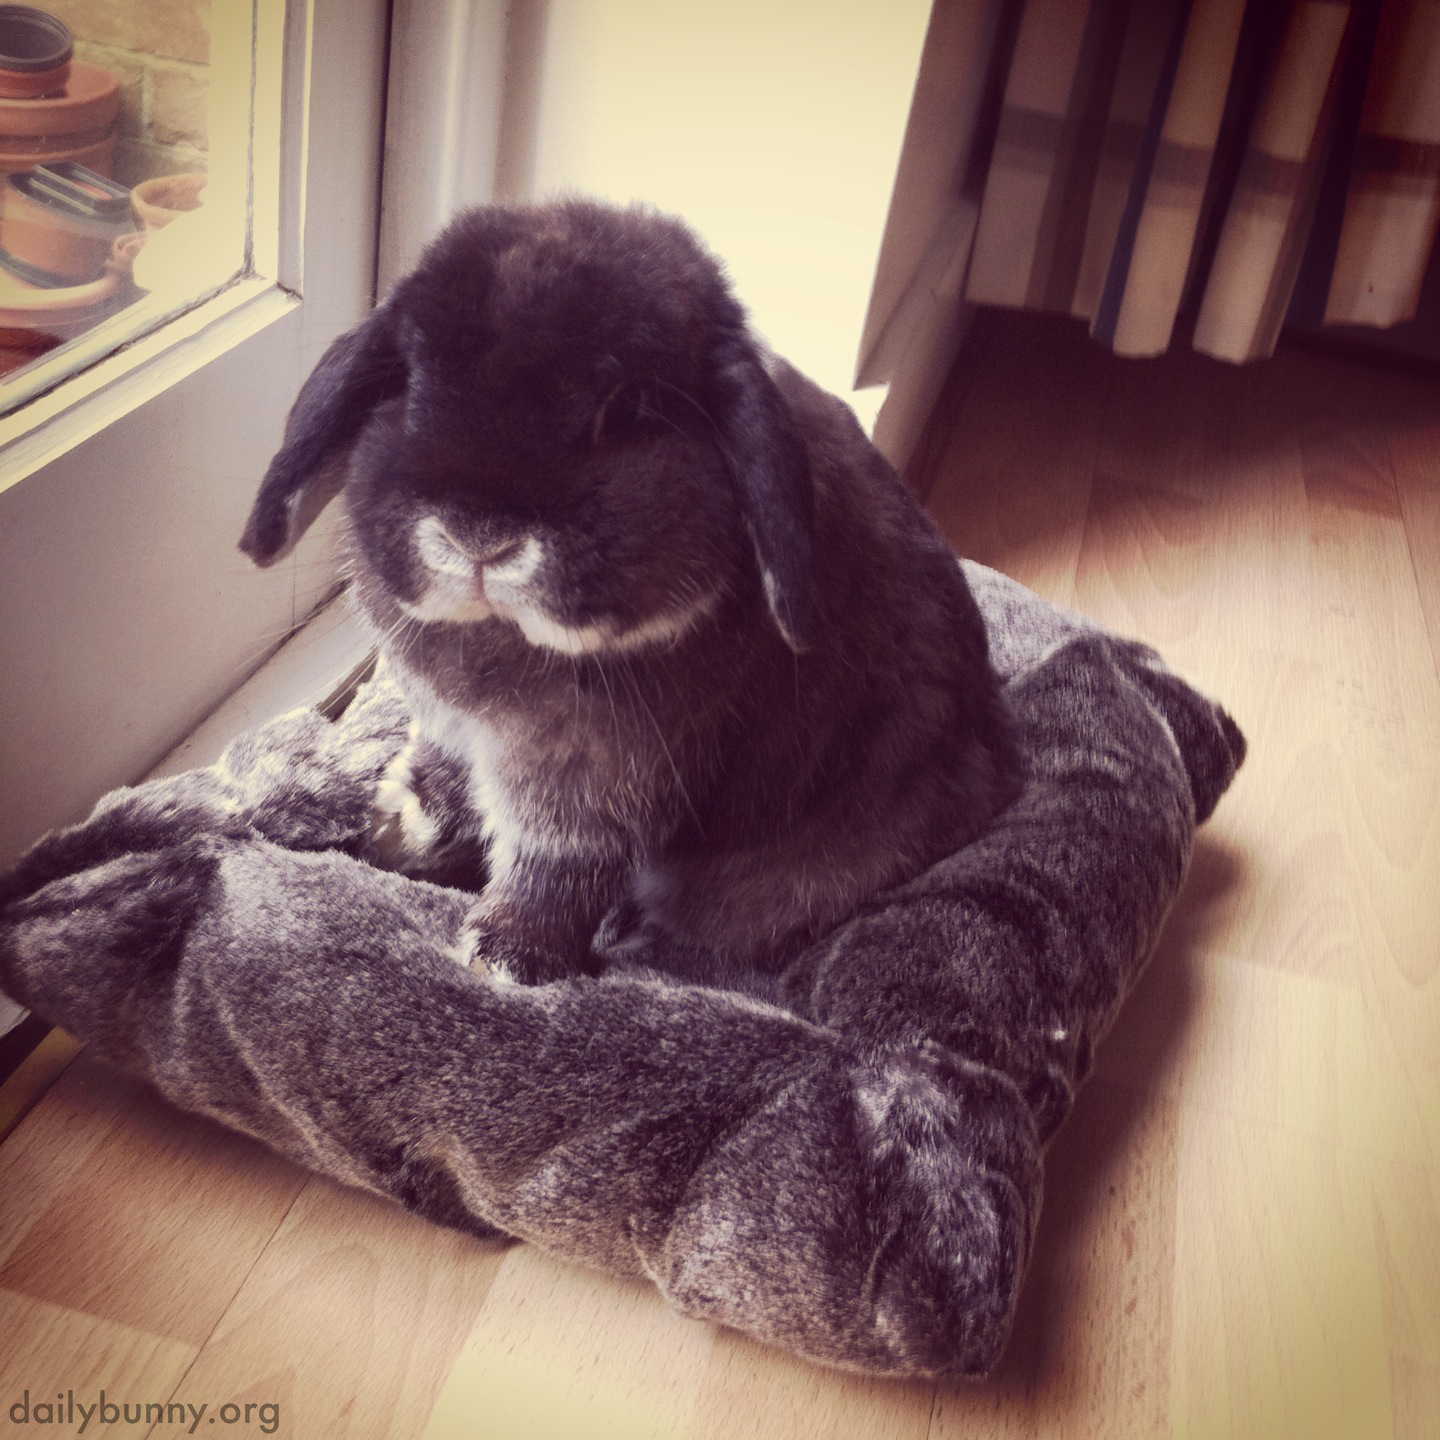 Bunny Likes to Match His Bedding with His Fur